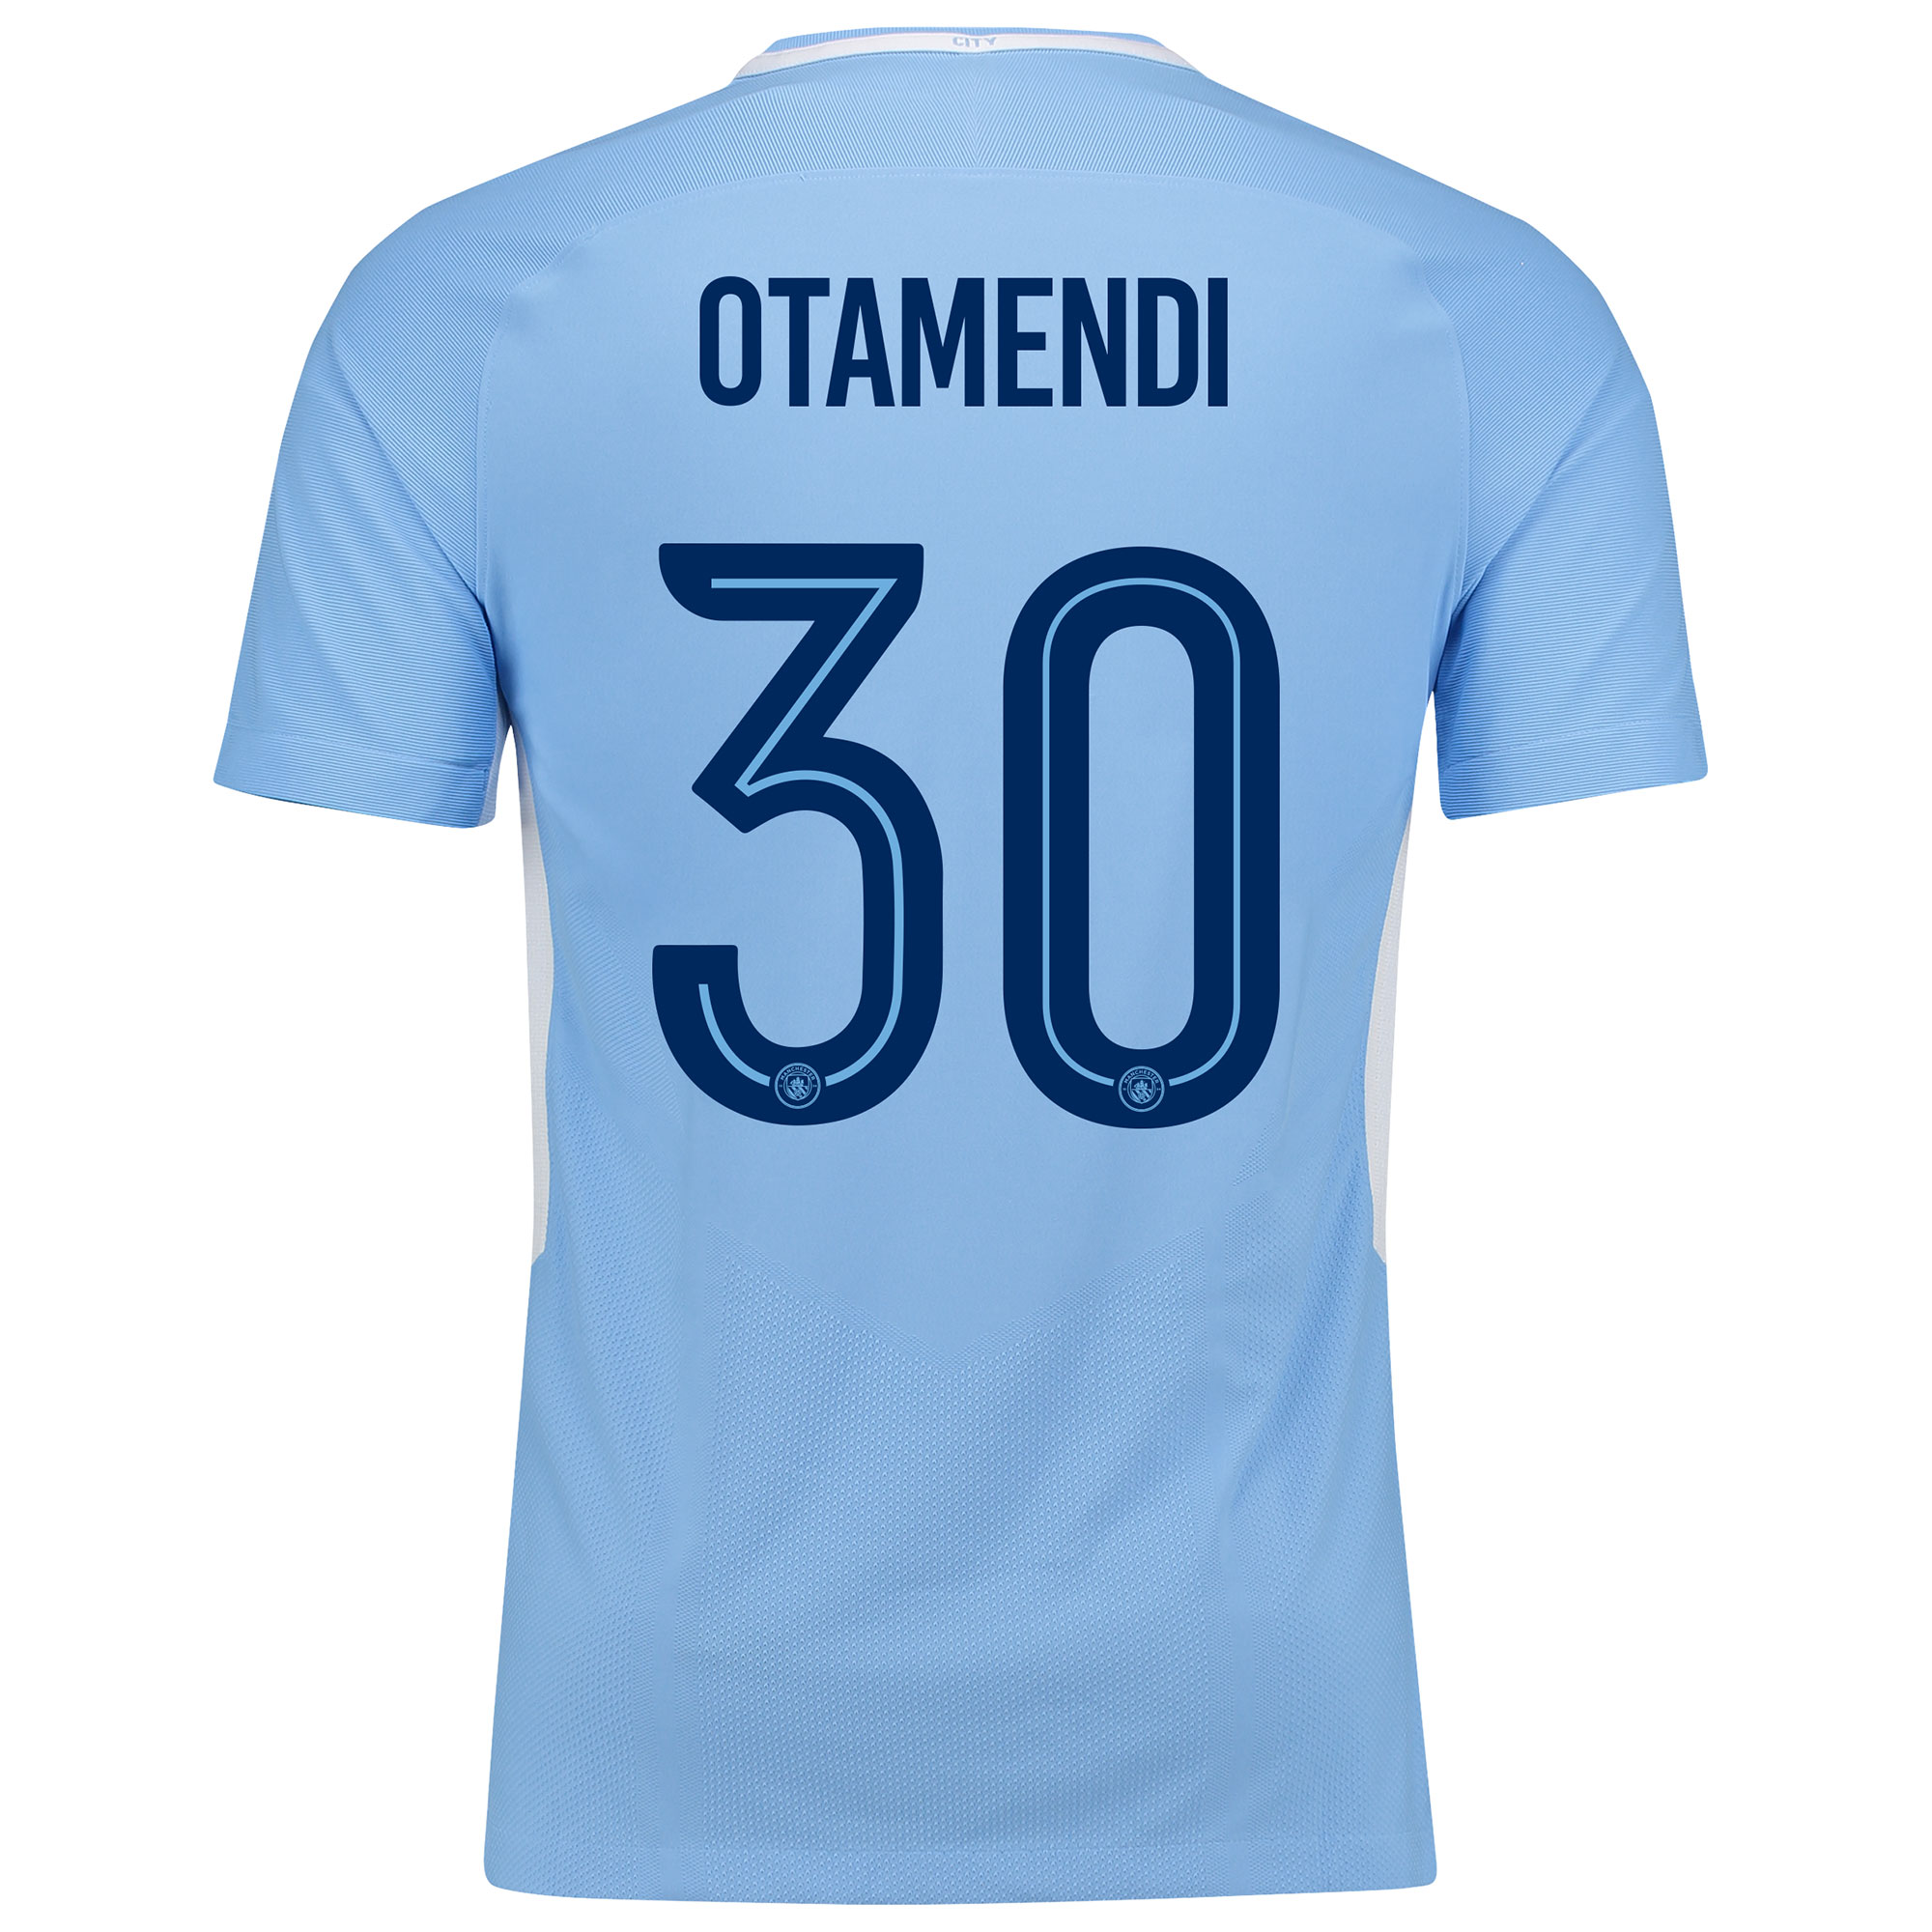 Manchester City Home Vapor Match Cup Shirt 2017-18 with Otamendi 30 pr